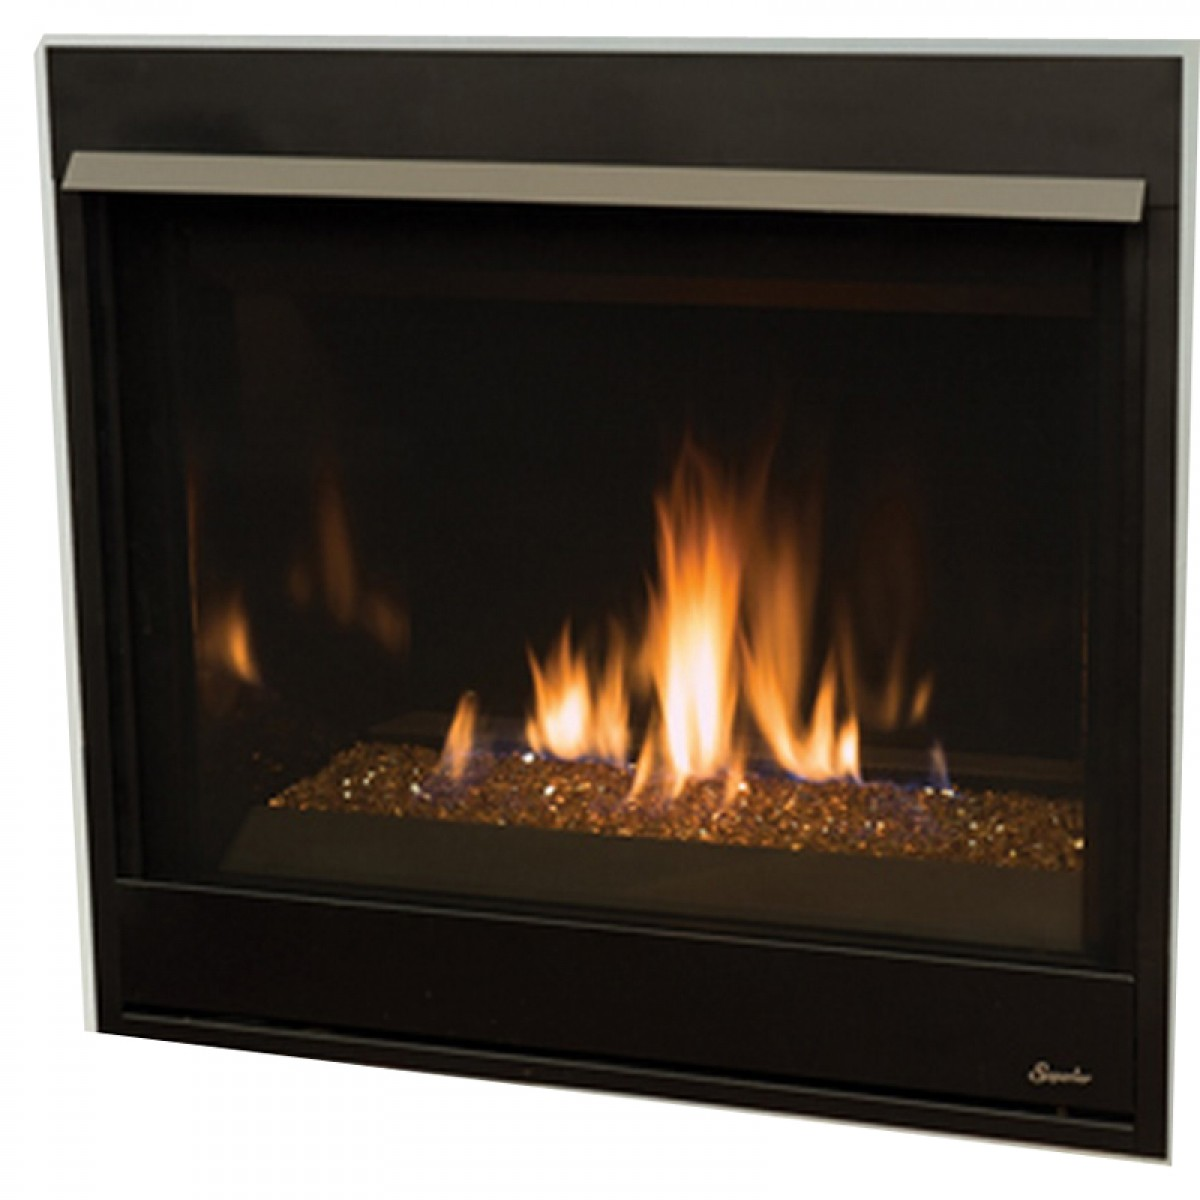 Ihp Superior Drc Direct Vent Gas Fireplace